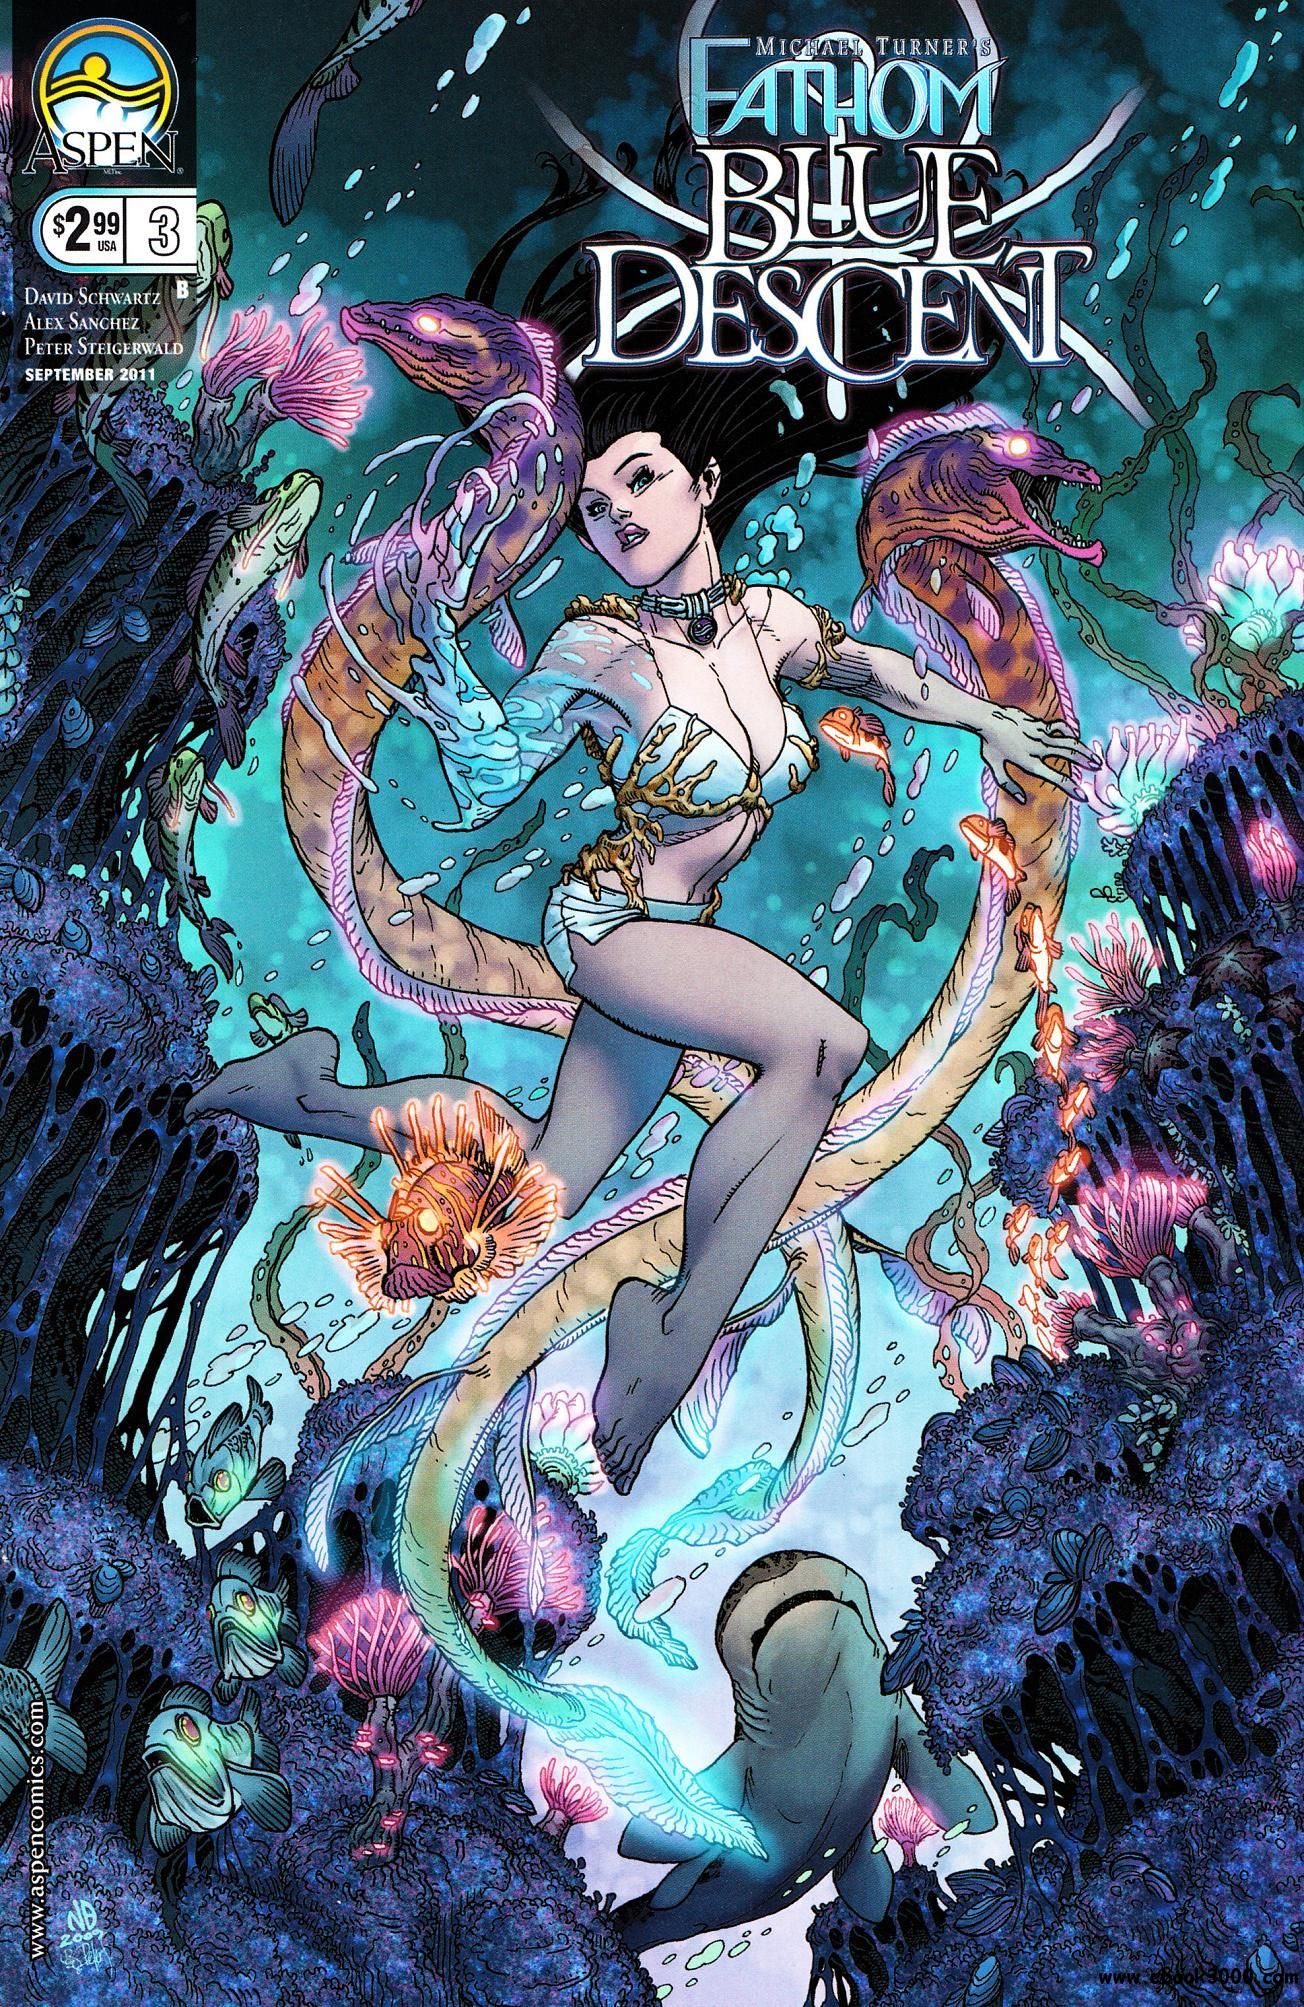 Fathom: Blue Descent #3 (2011) free download